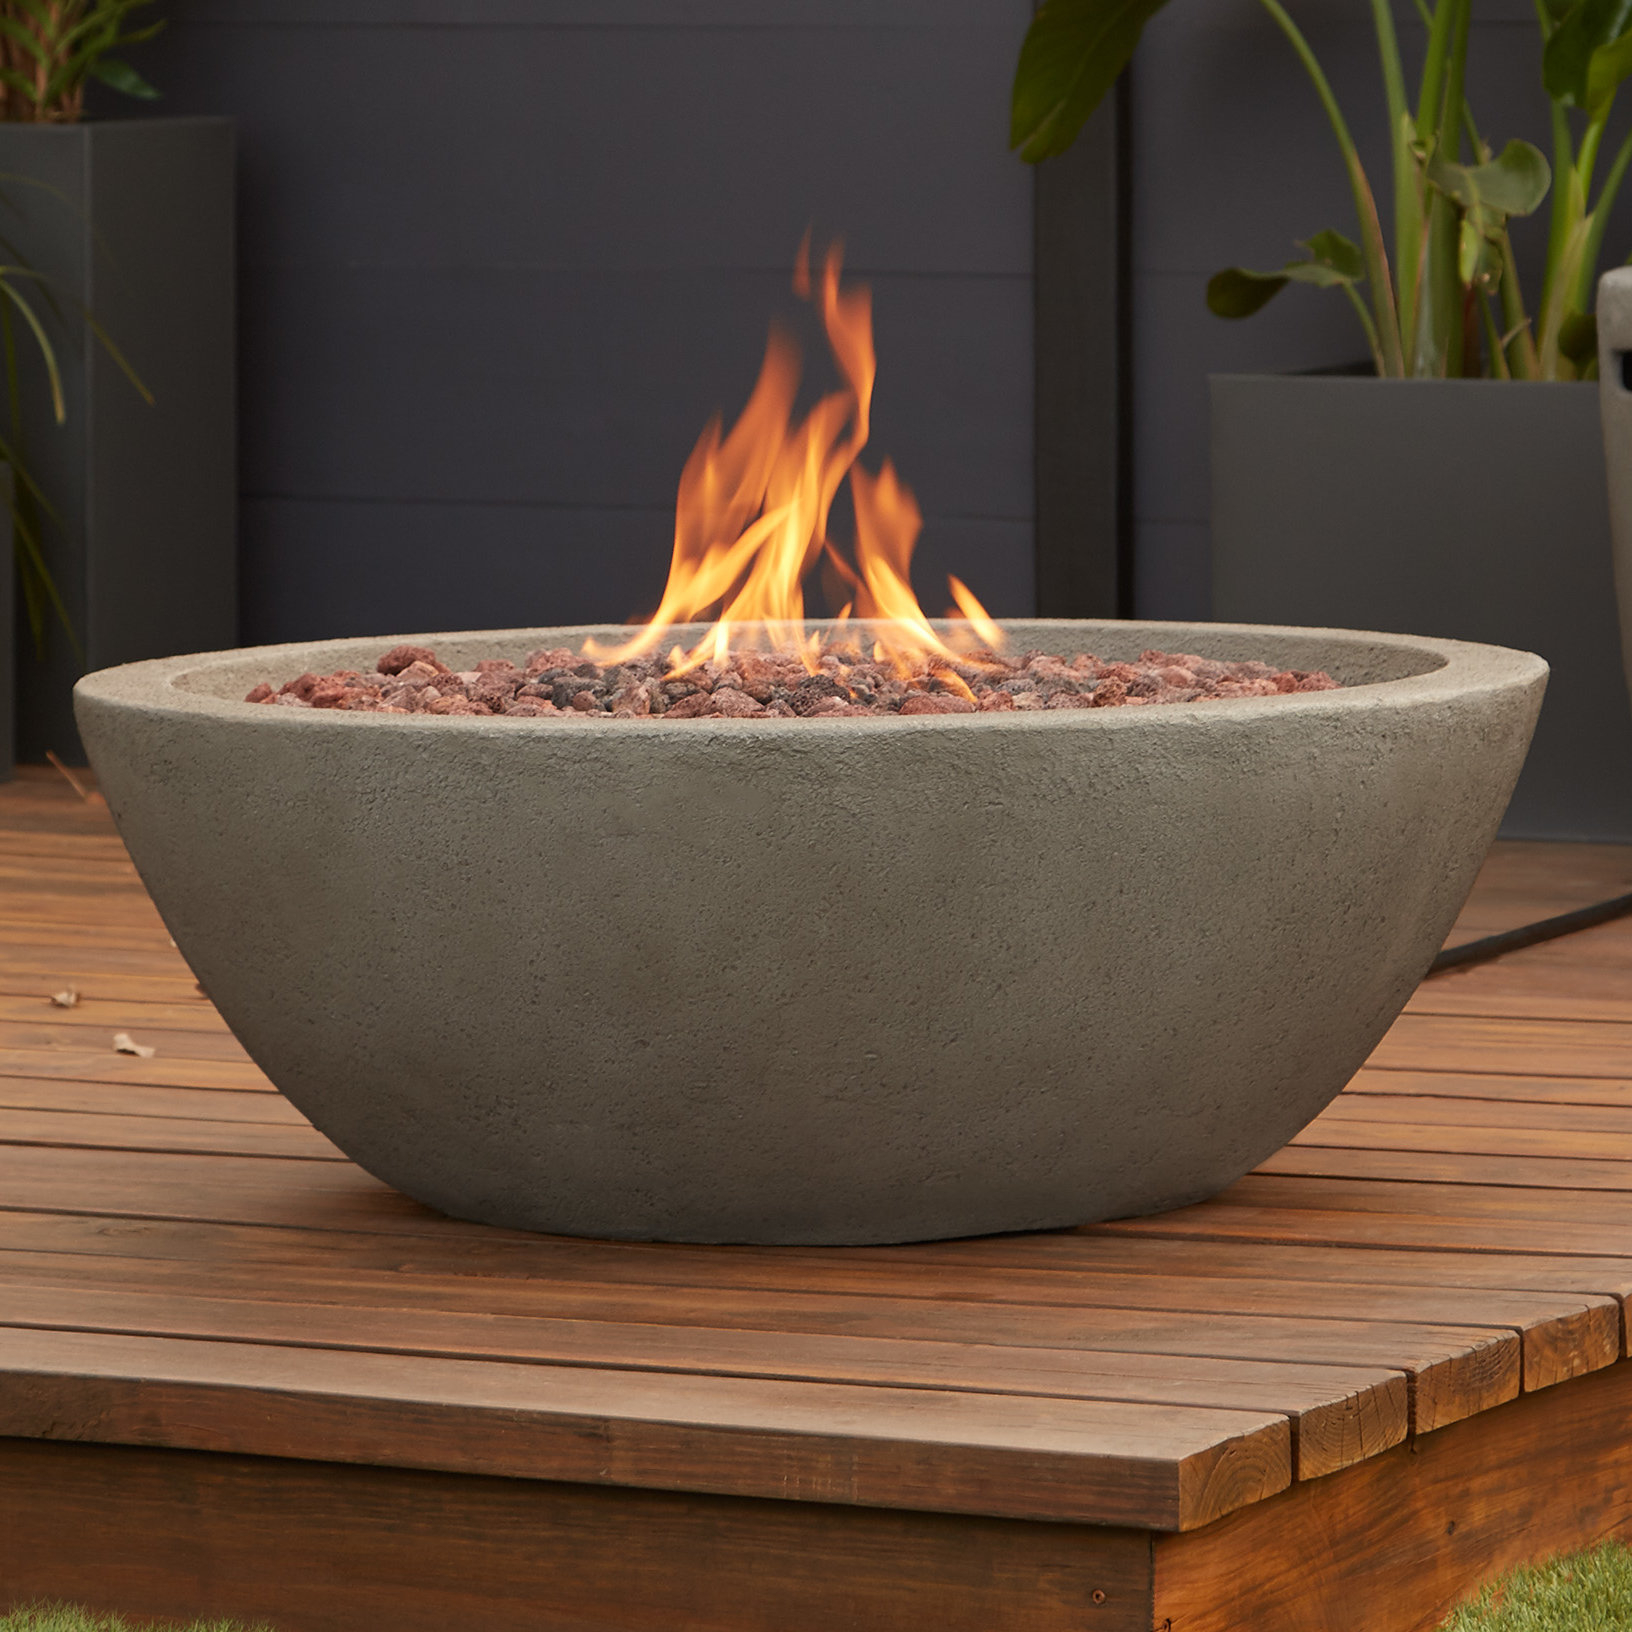 Real Flame Riverside Concrete Propane Gas Fire Pit Reviews Wayfair inside dimensions 1632 X 1632